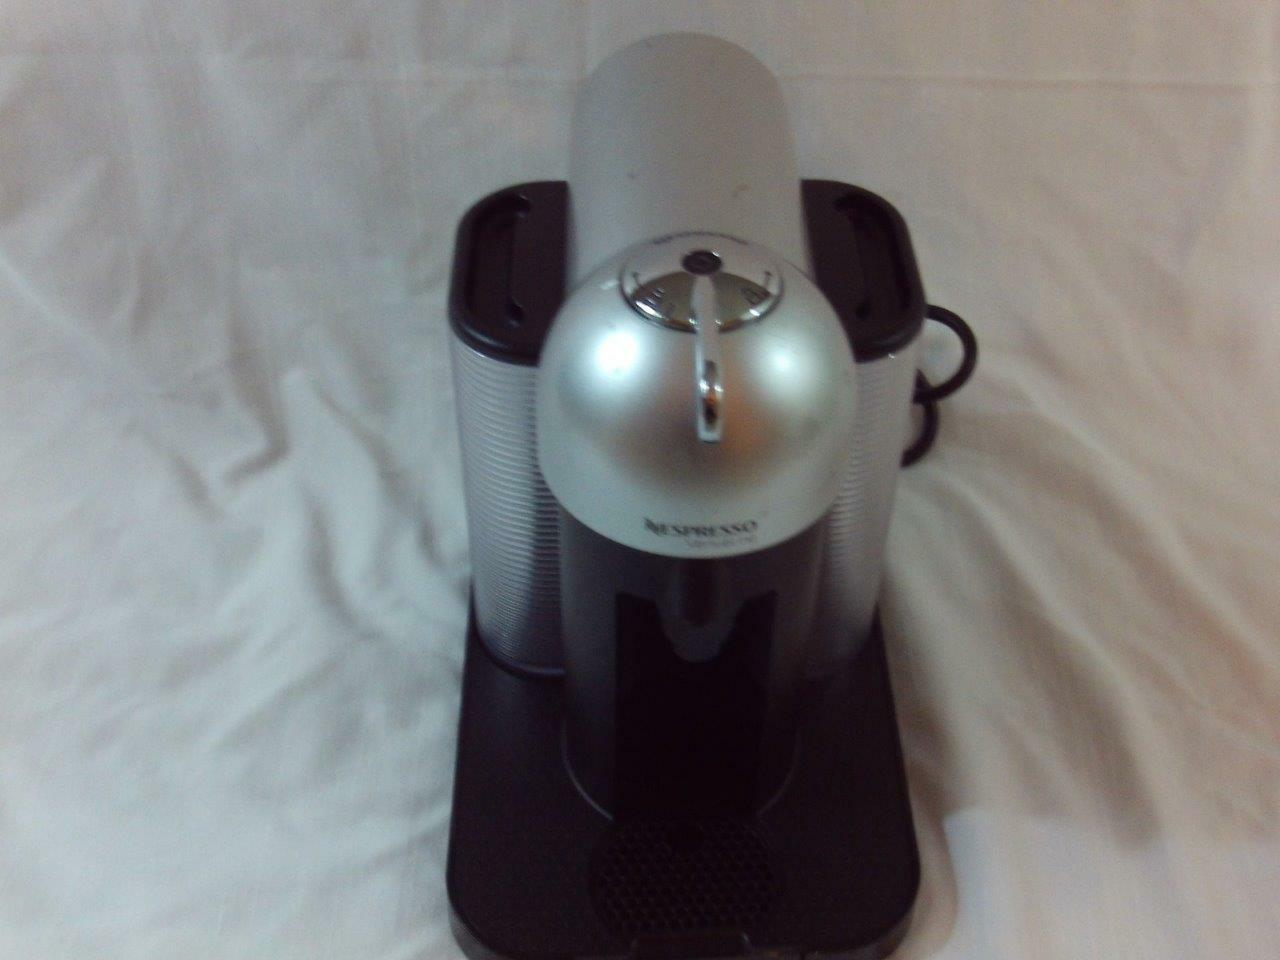 NESPRESSO Single SOLO Cup Gourmet COFFEE MAKER Brewer GCA1